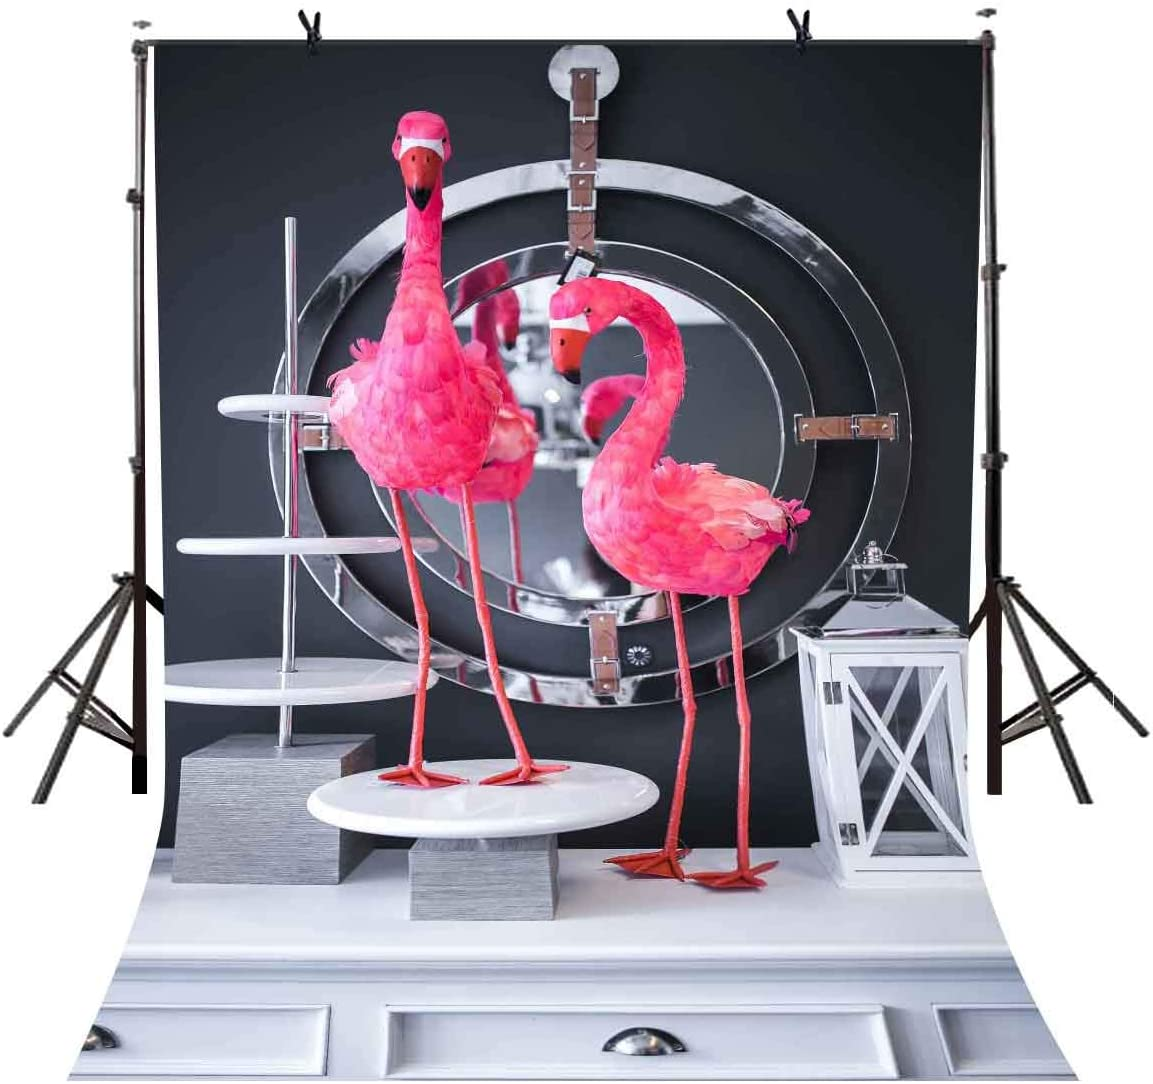 LYLYCTY 5x7ft Flamingo Theme Background Flamingos Stand on White Table Photography Background and Studio Photography Backdrop Props LYGE1011